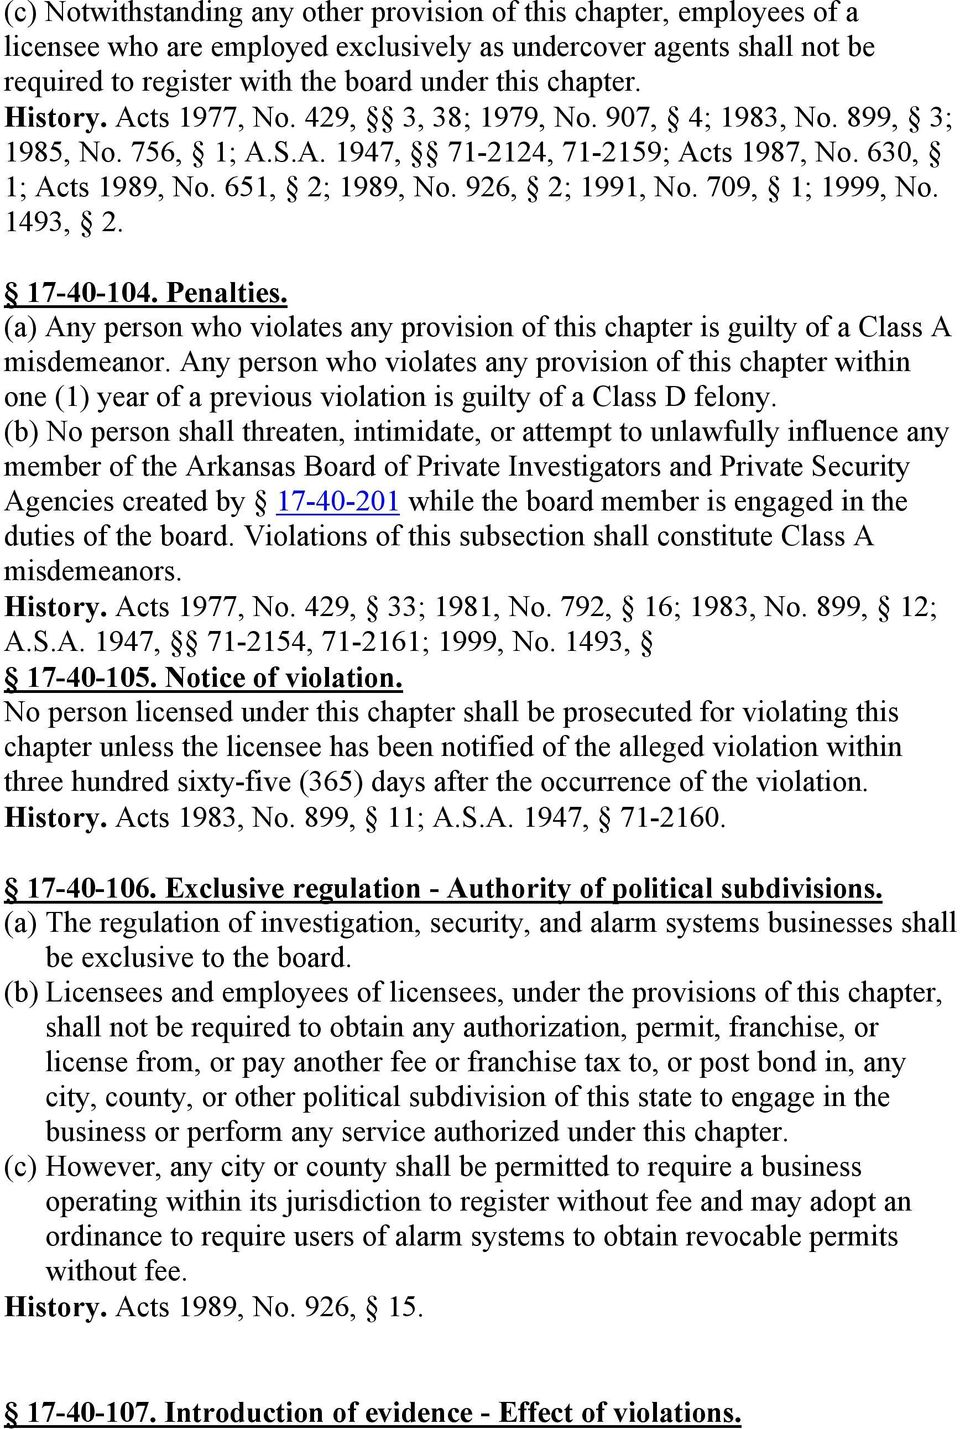 709, 1; 1999, No. 1493, 2. 17-40-104. Penalties. (a) Any person who violates any provision of this chapter is guilty of a Class A misdemeanor.